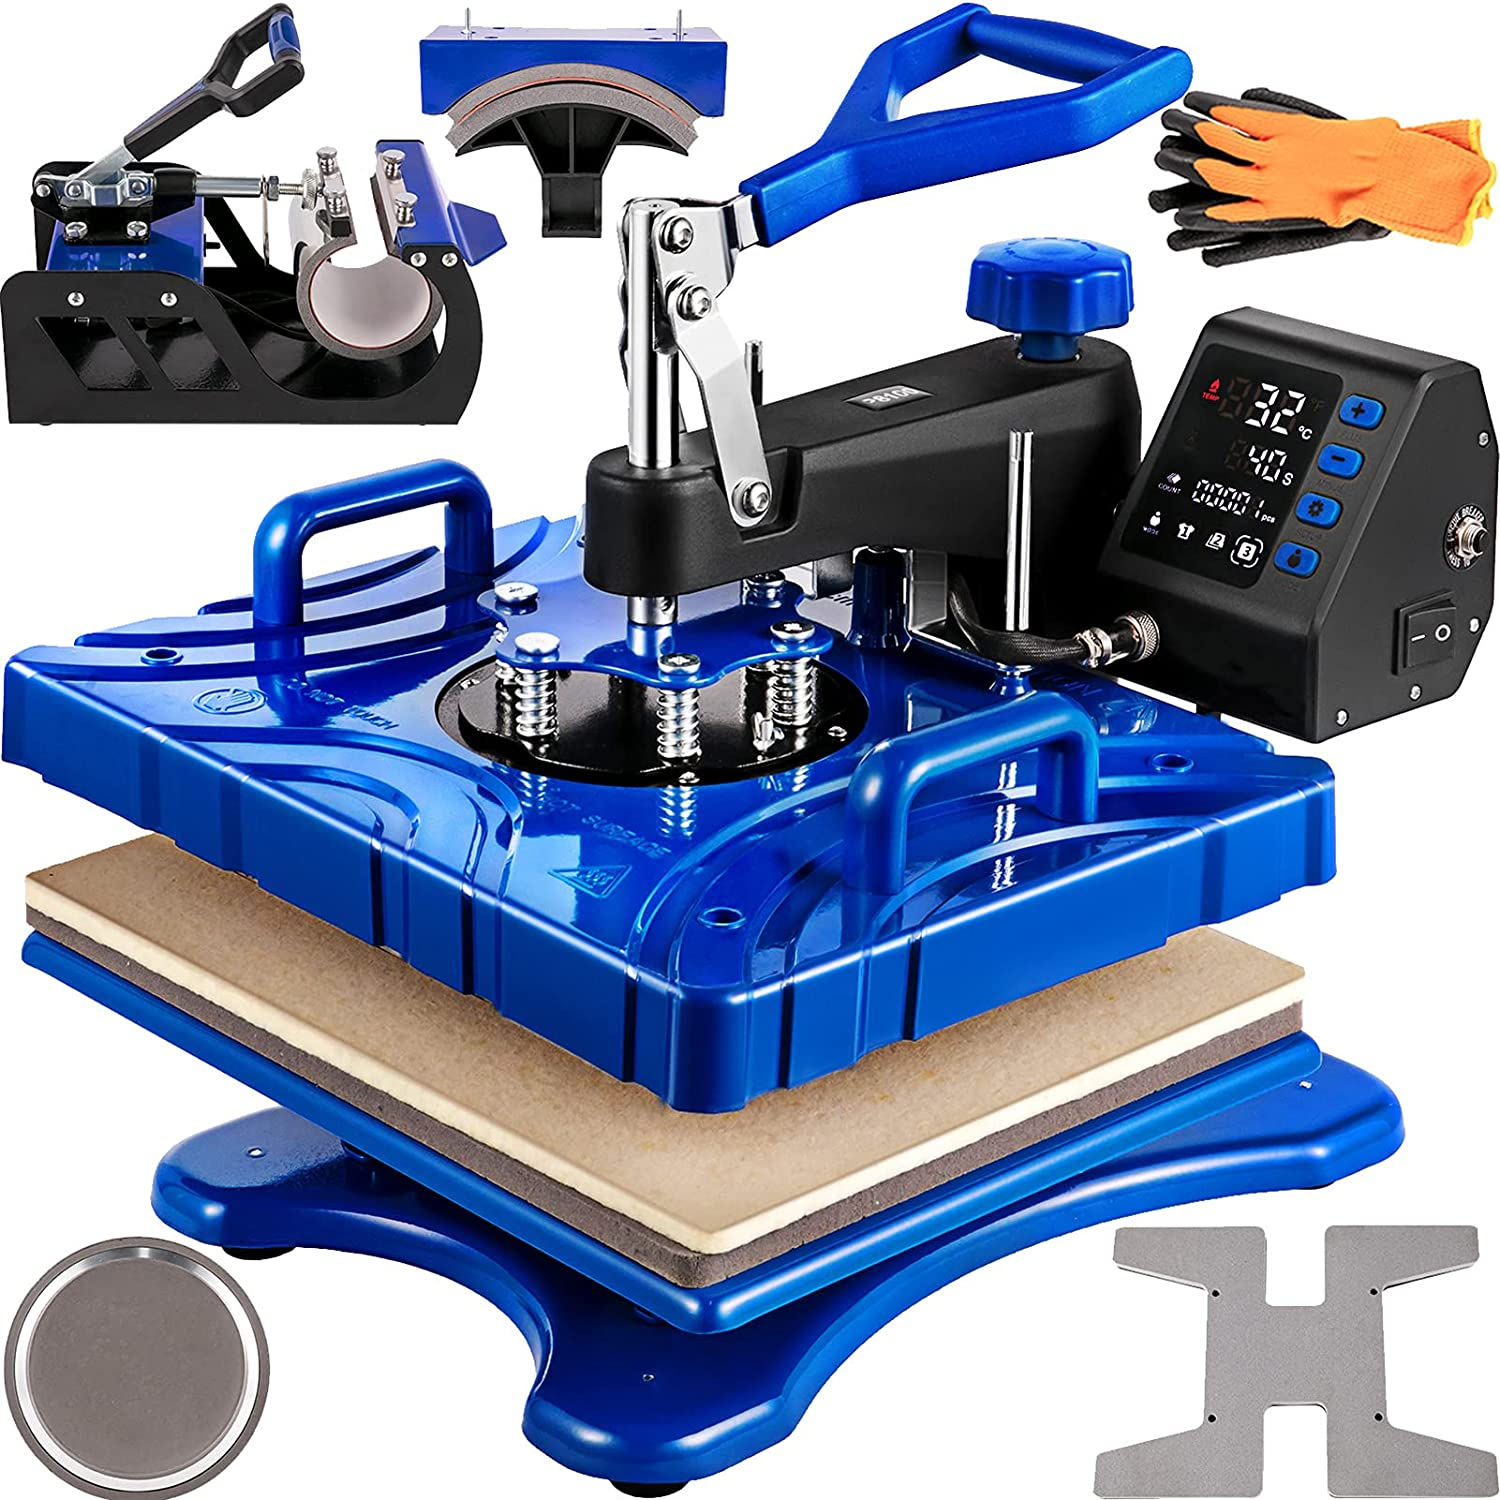 5 in 1 Surprise price Multi-Function Heat Press Print Can The Patte Any Opening large release sale Printer